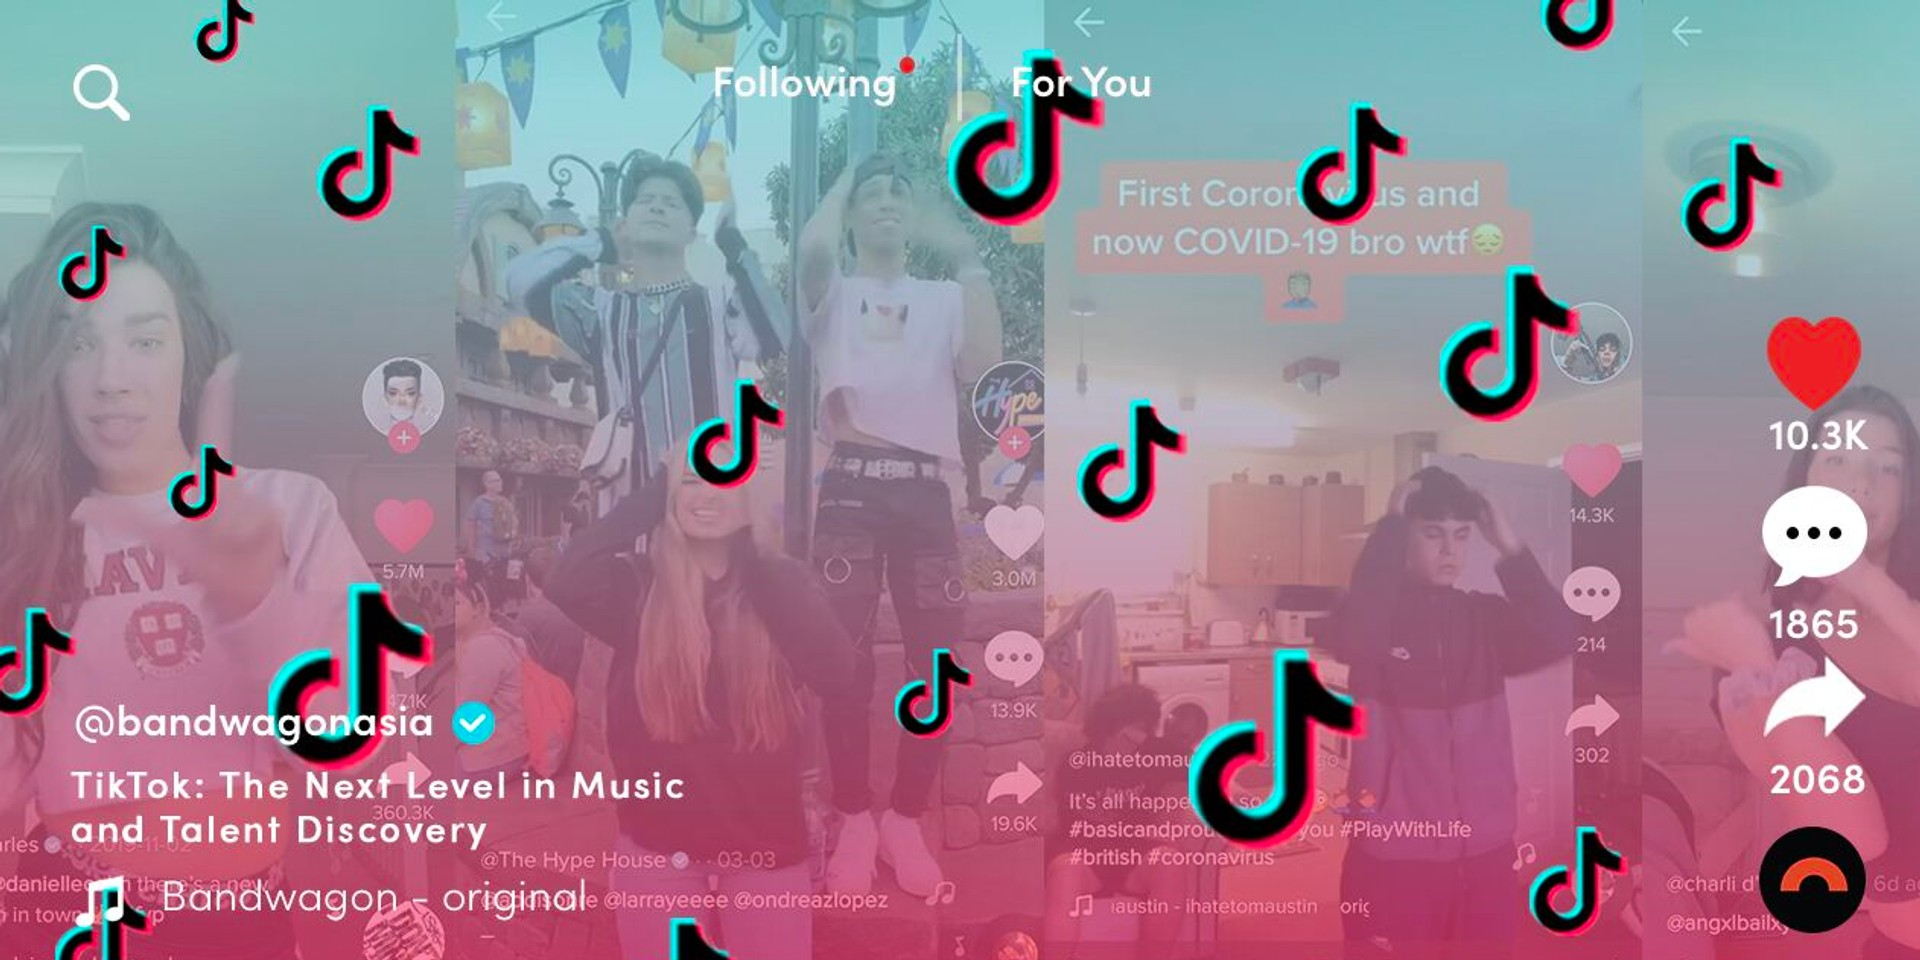 Why TikTok could make you the next viral sensation and brighten up your quarantine